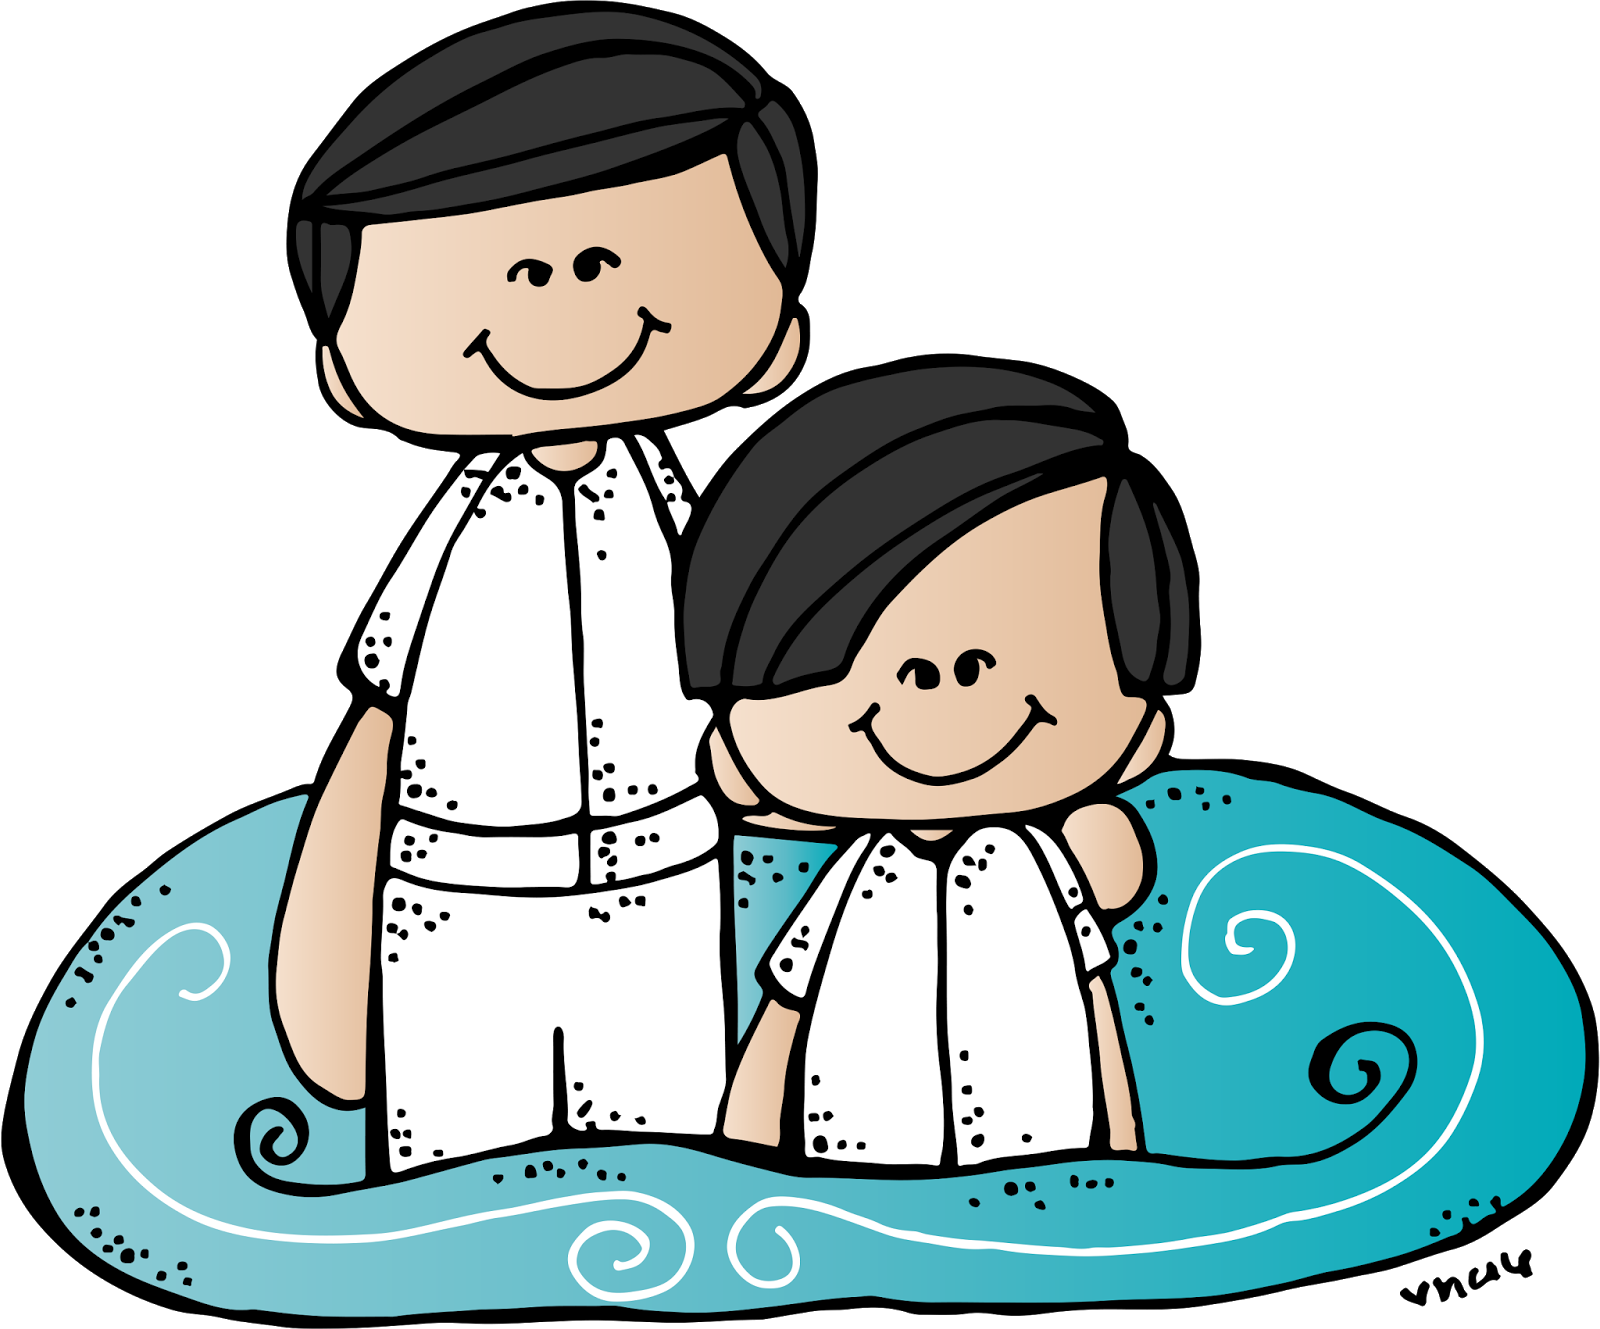 melonheadz lds illustrating more stuff for the new year church rh pinterest com lds clipart baptism girl lds baptism clipart free